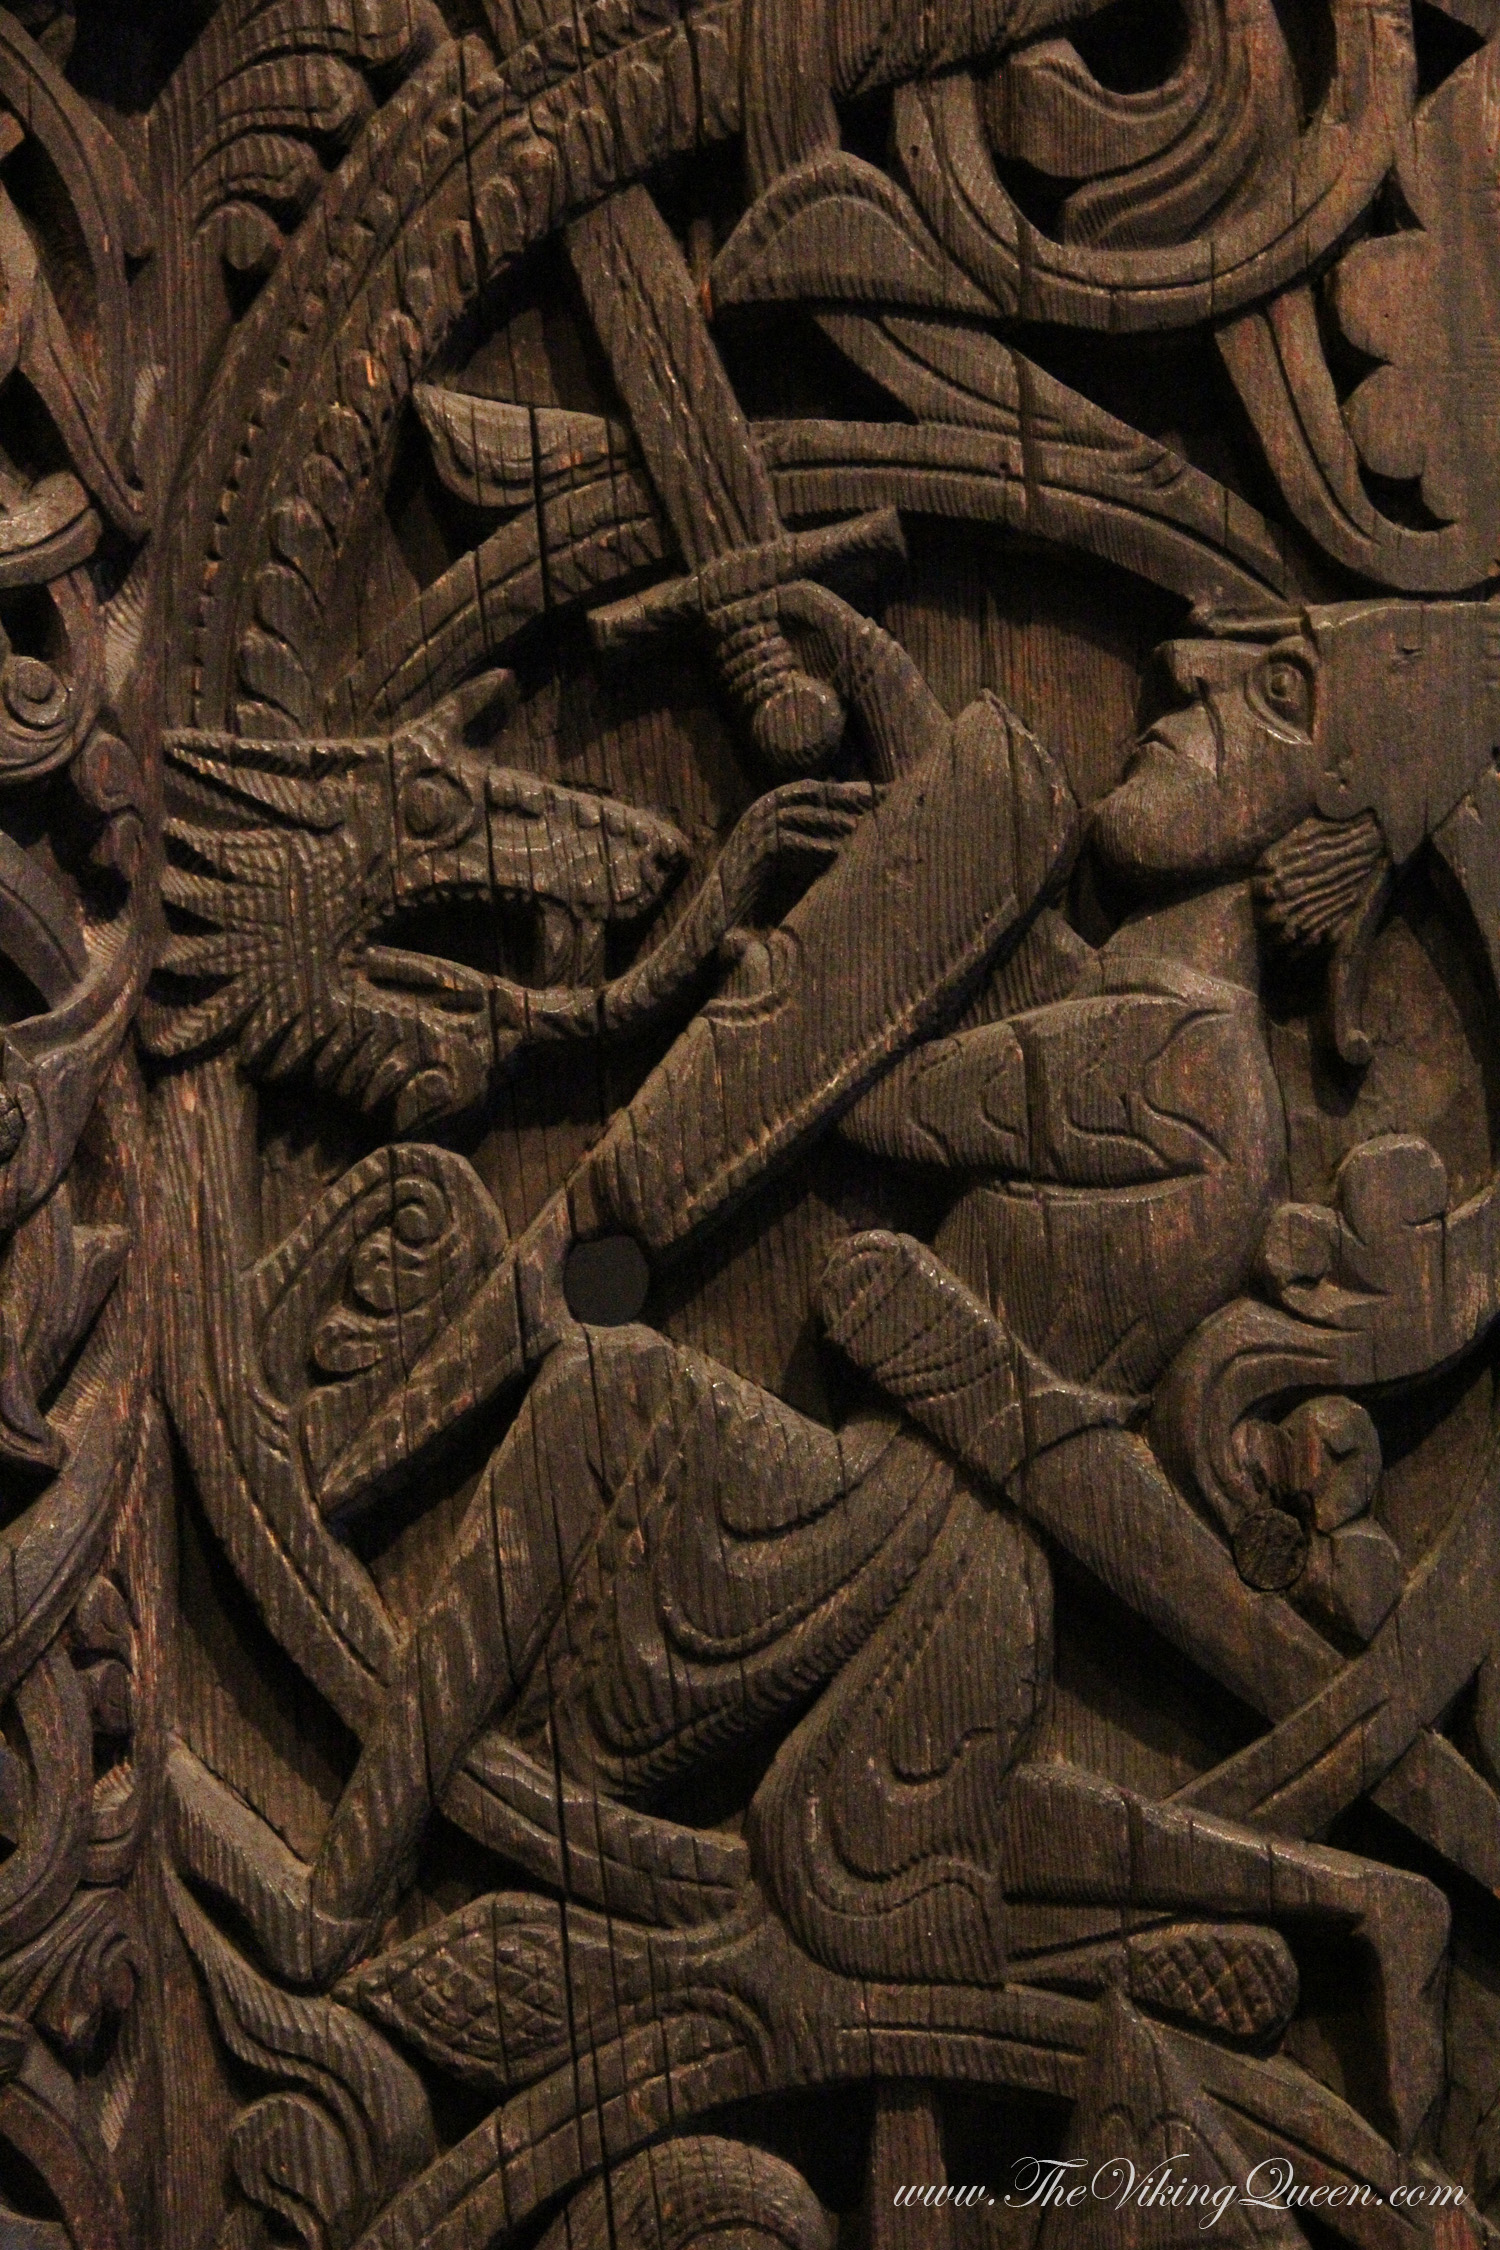 Wood carving thevikingqueen